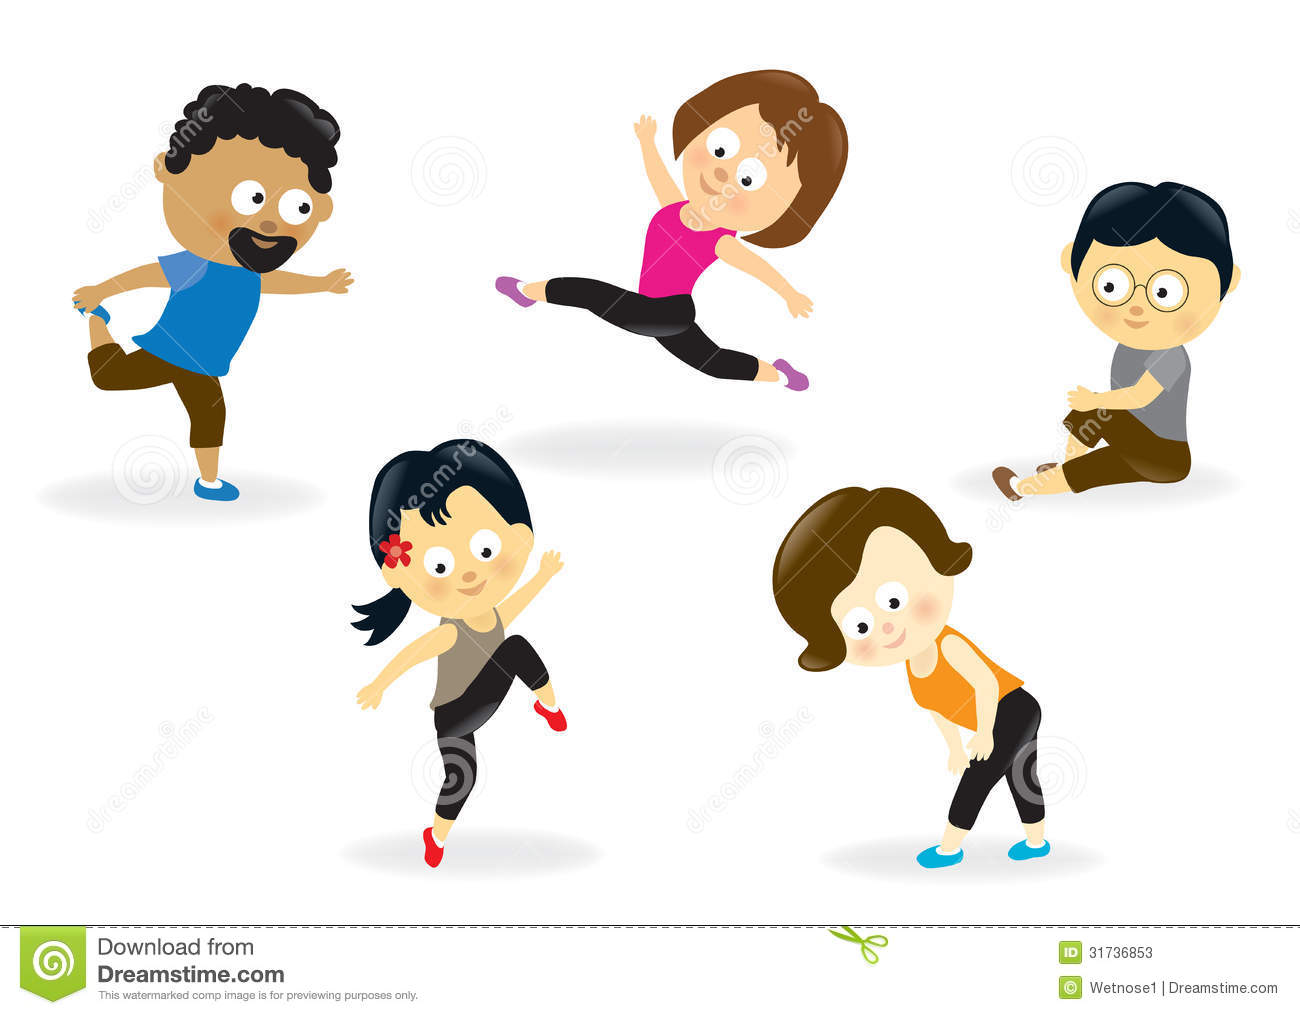 Group fit class clipart image library library Group Fitness Training Clip Art – Clipart Free Download image library library